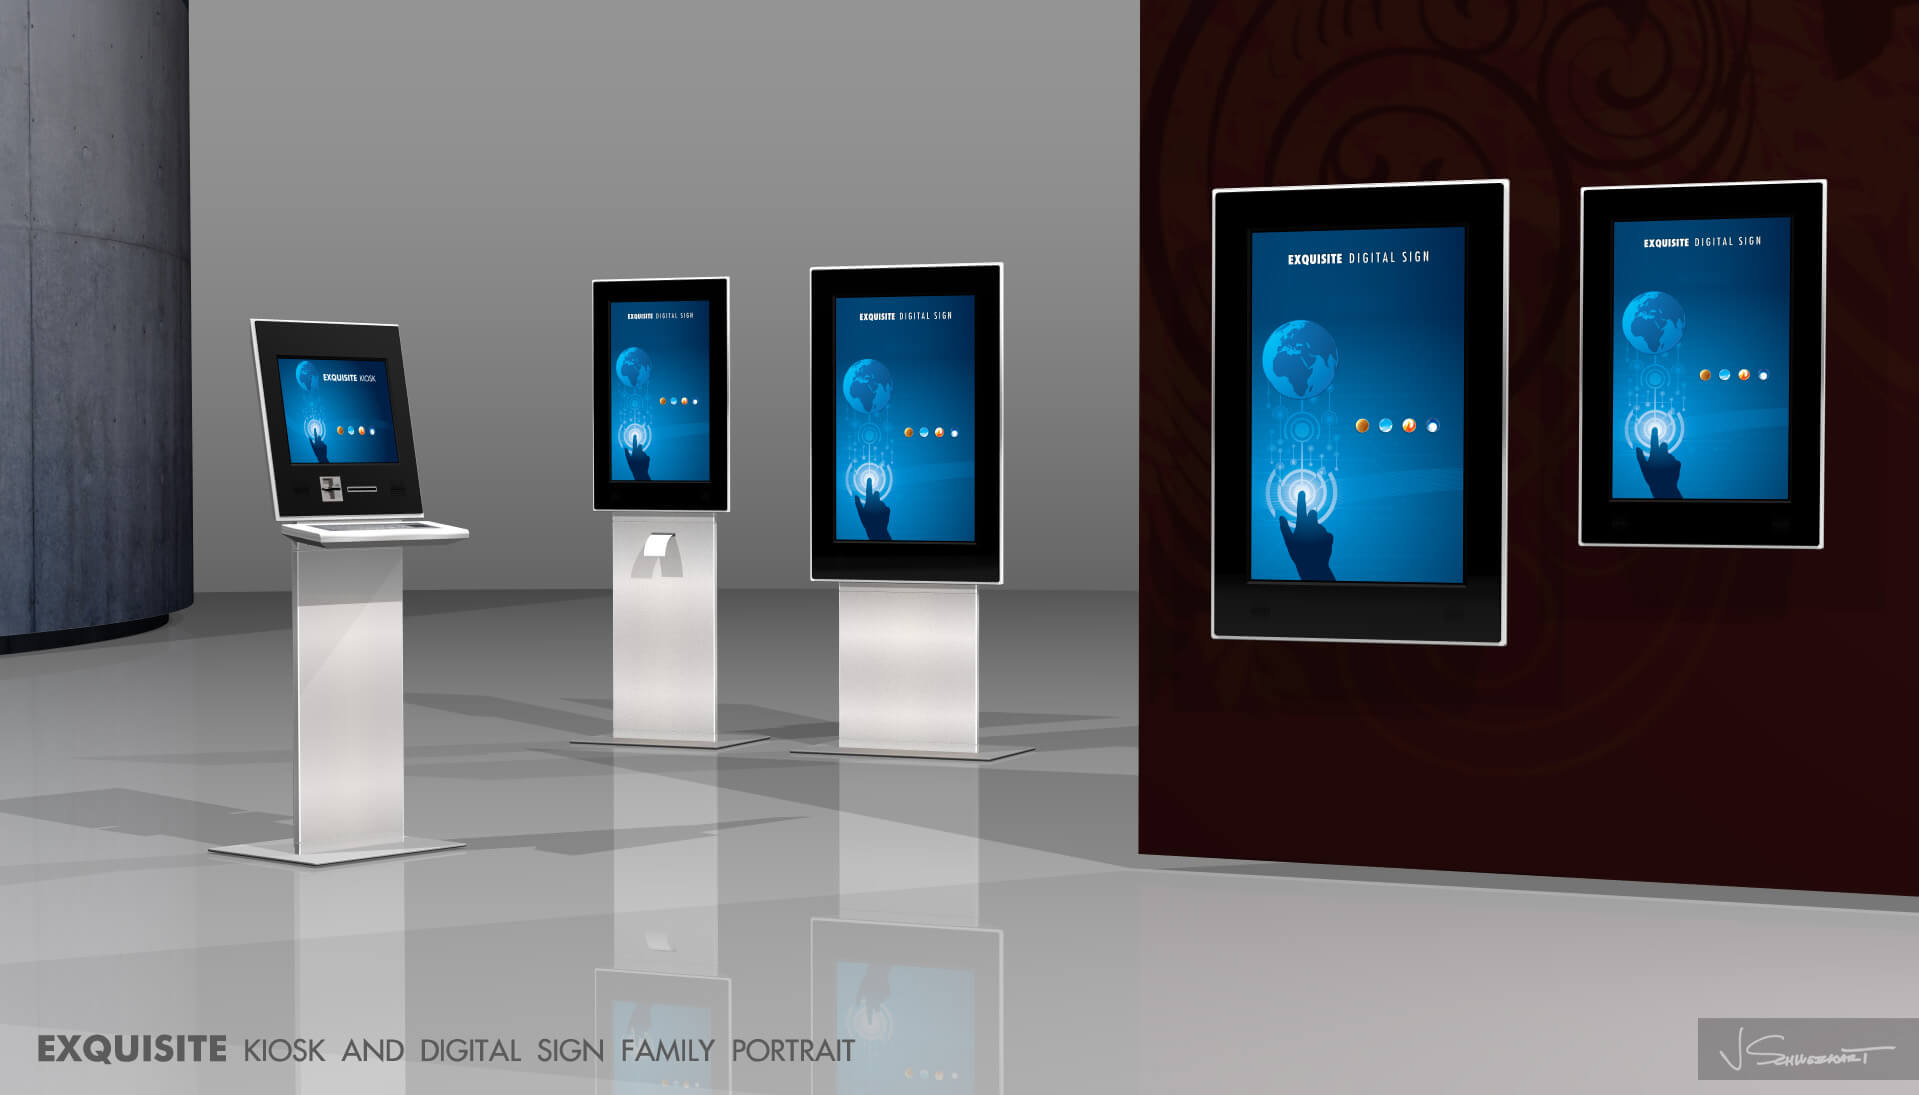 Exquisite Digital Sign and Kiosk Designed by Industrial Designer Jer Schweickart